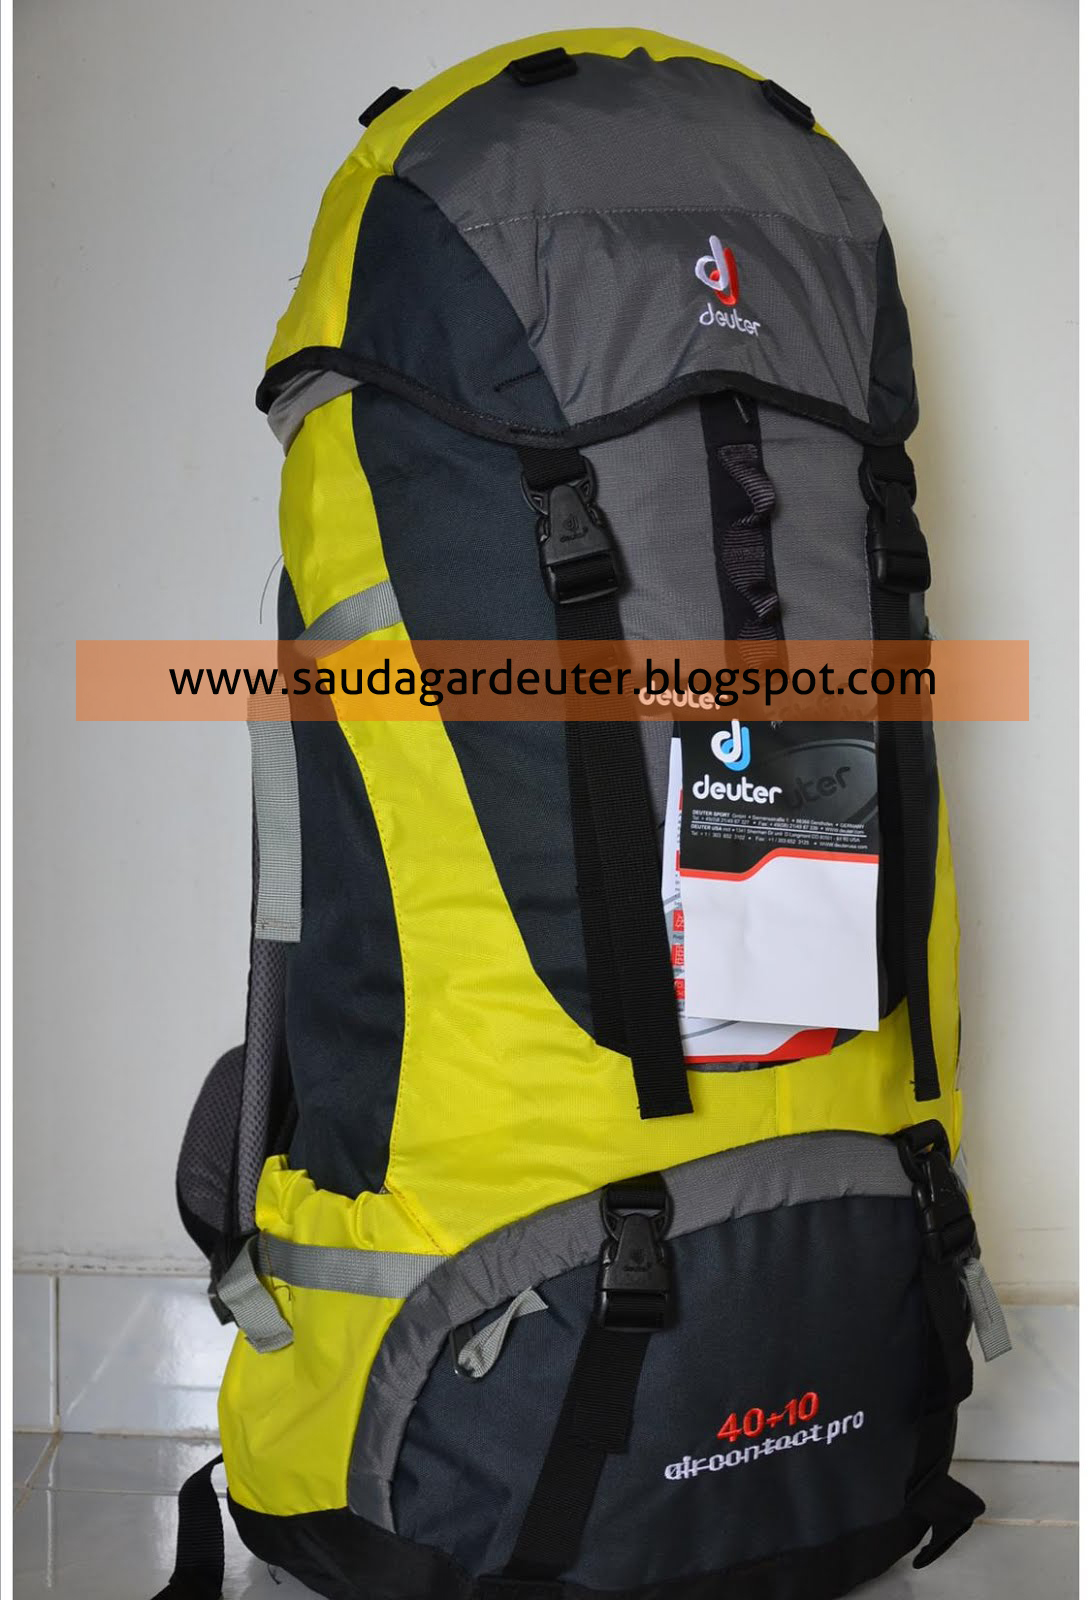 deuter 40l 10l aircontact saudagar deuter. Black Bedroom Furniture Sets. Home Design Ideas